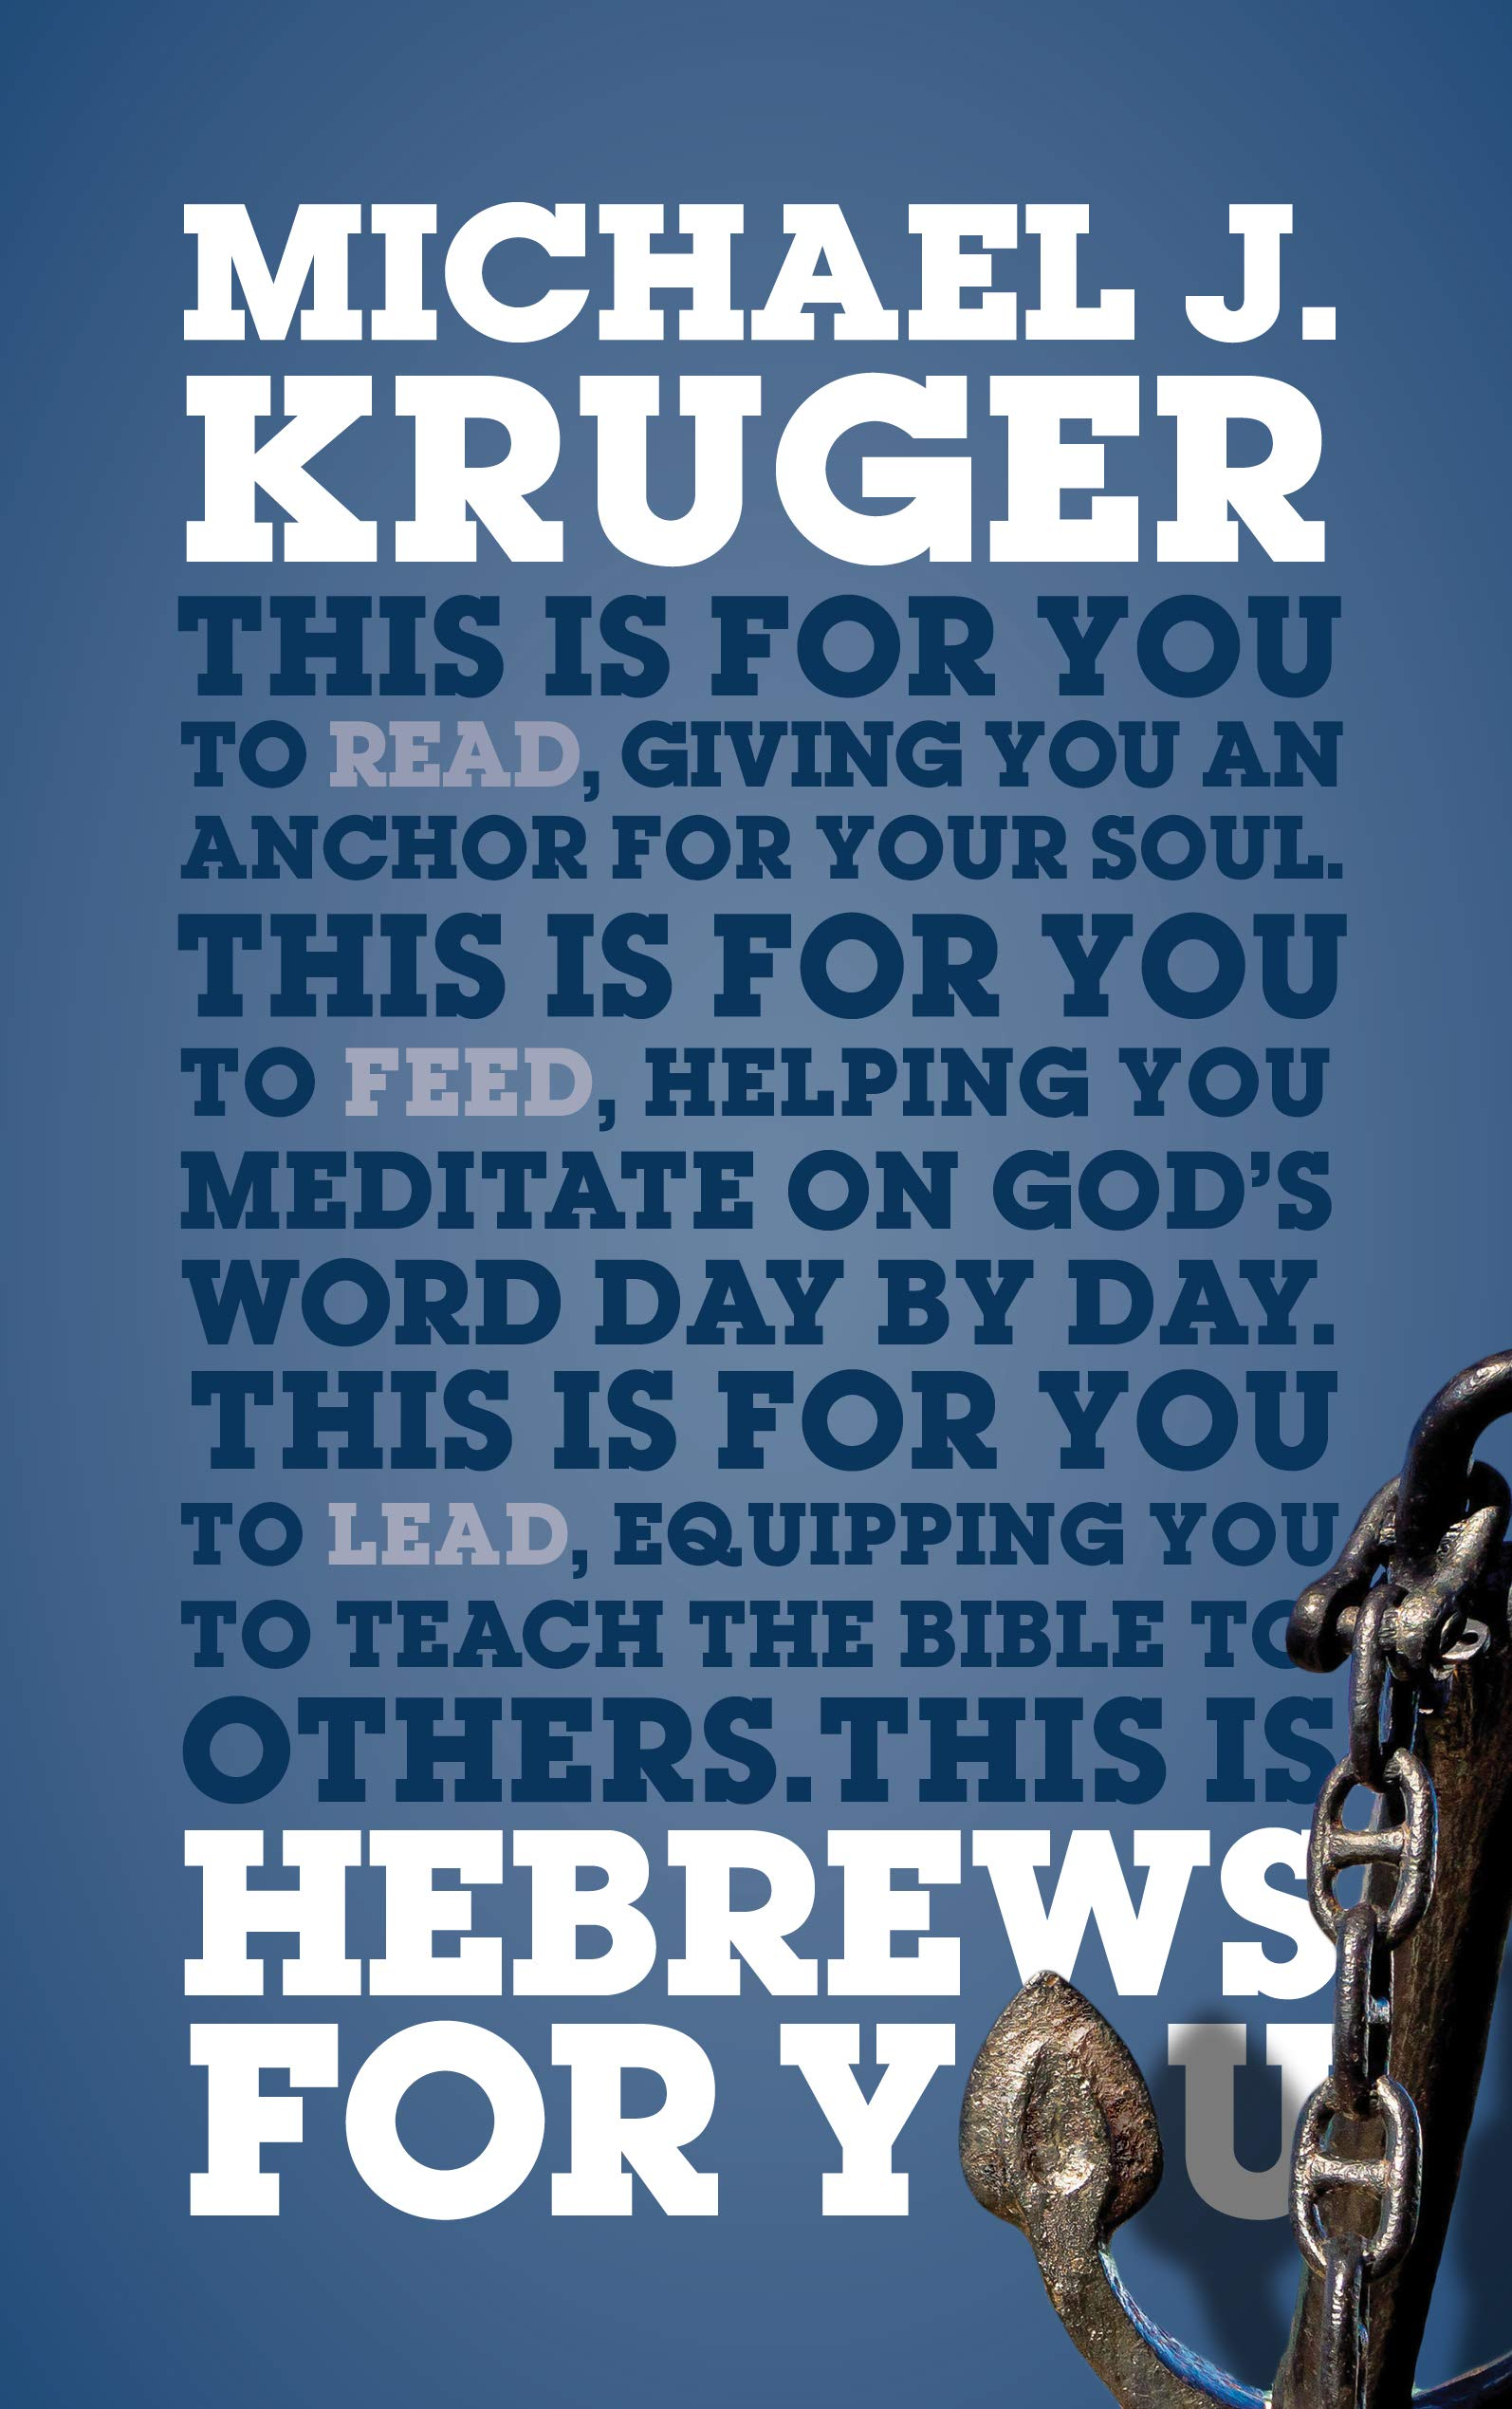 Hebrews For You (God's Word for You): Michael J. Kruger: 9781784986056: Amazon.com: Books